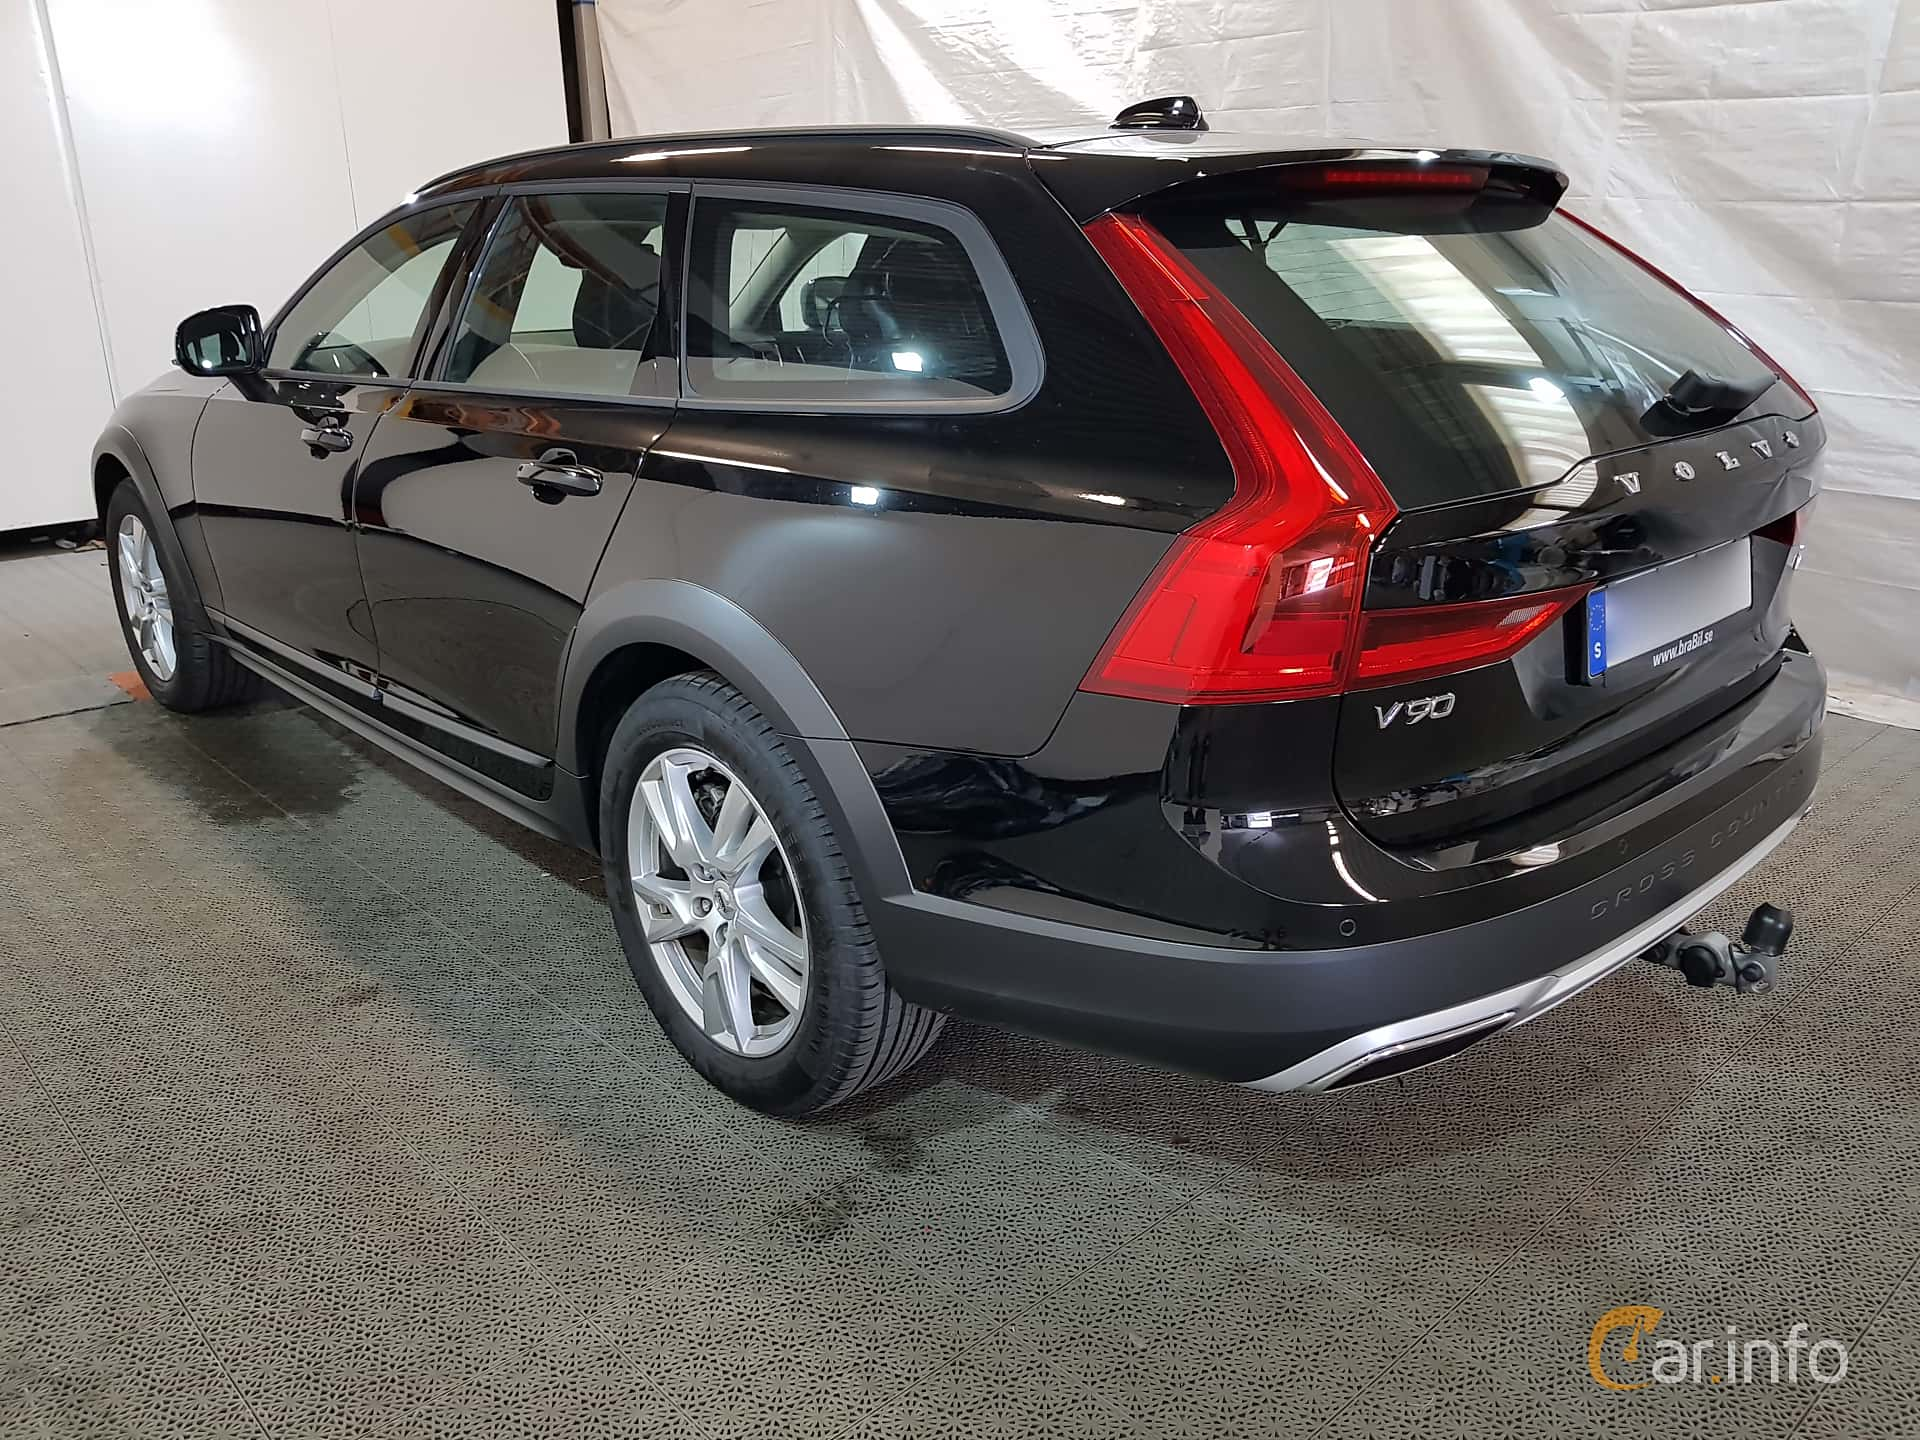 Volvo V90 Cross Country D4 Awd Manual 190hp 2018 The Is New Tradingsolutions